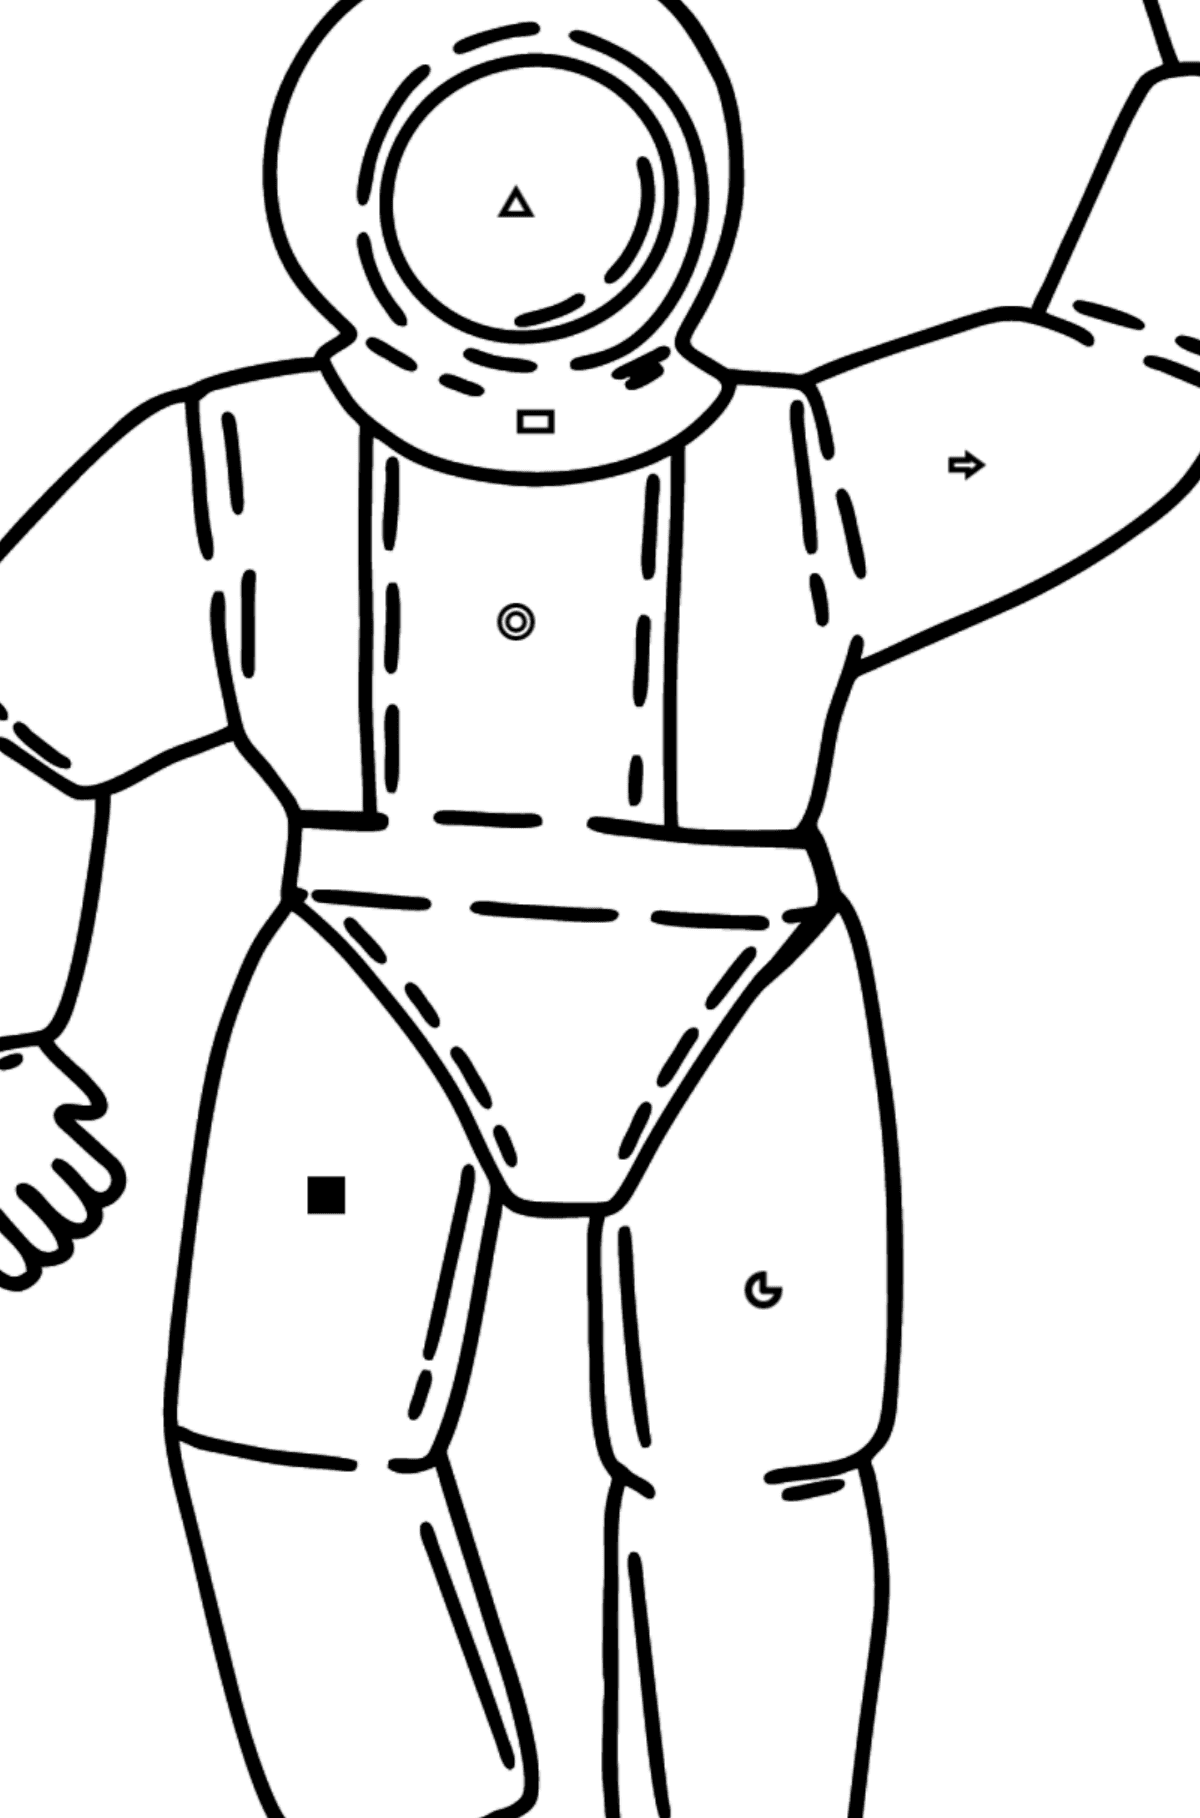 Astronaut coloring page - Coloring by Symbols and Geometric Shapes for Kids